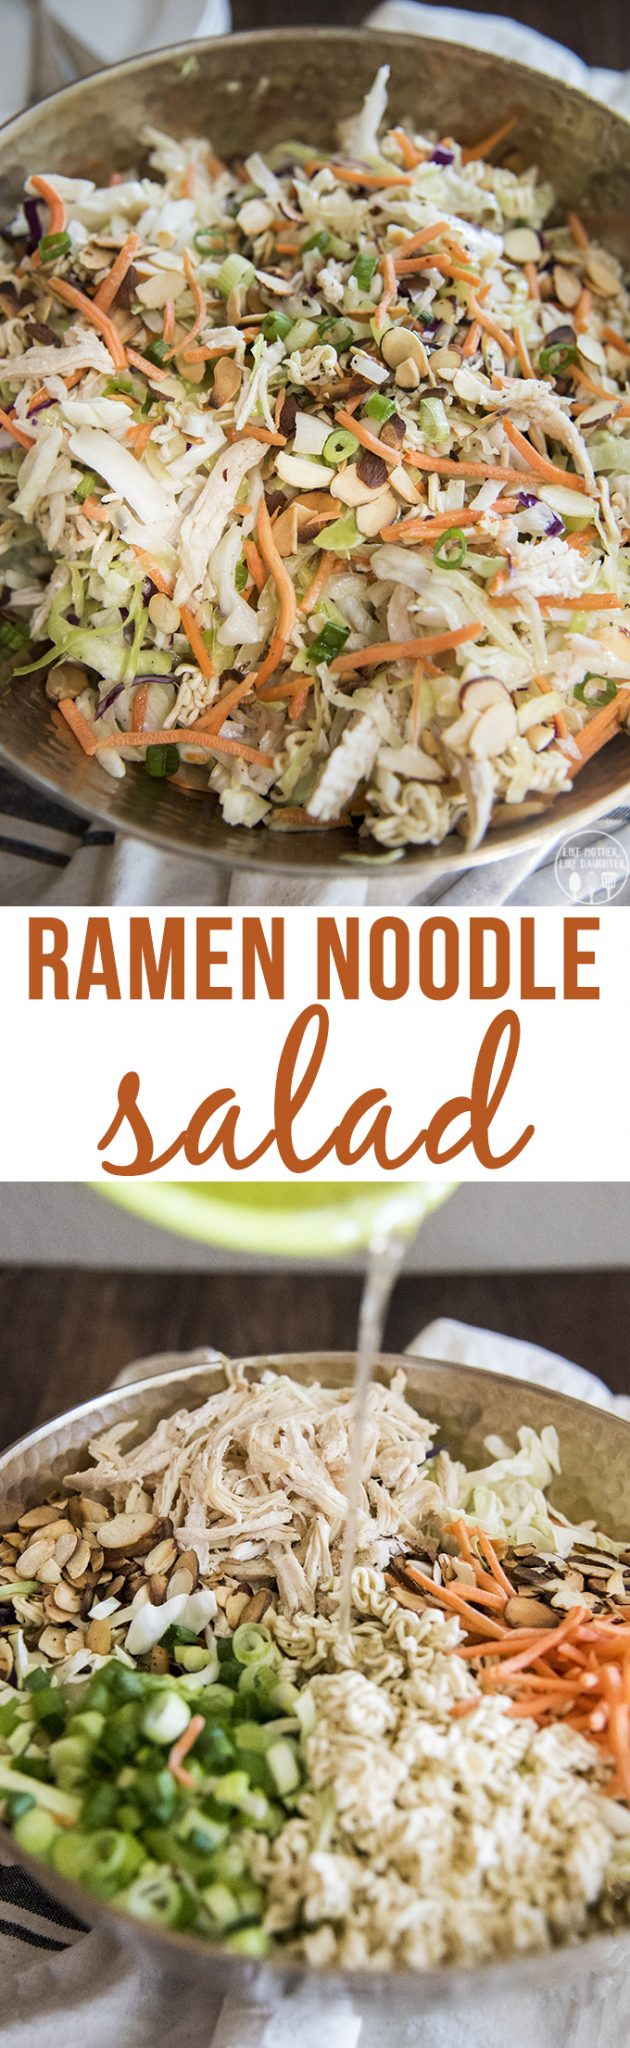 RRamen noodle salad is quick and easy to make. The crunchy salad is covered in a flavorful dressing and is perfect served at a picnic, potluck, or barbecue!